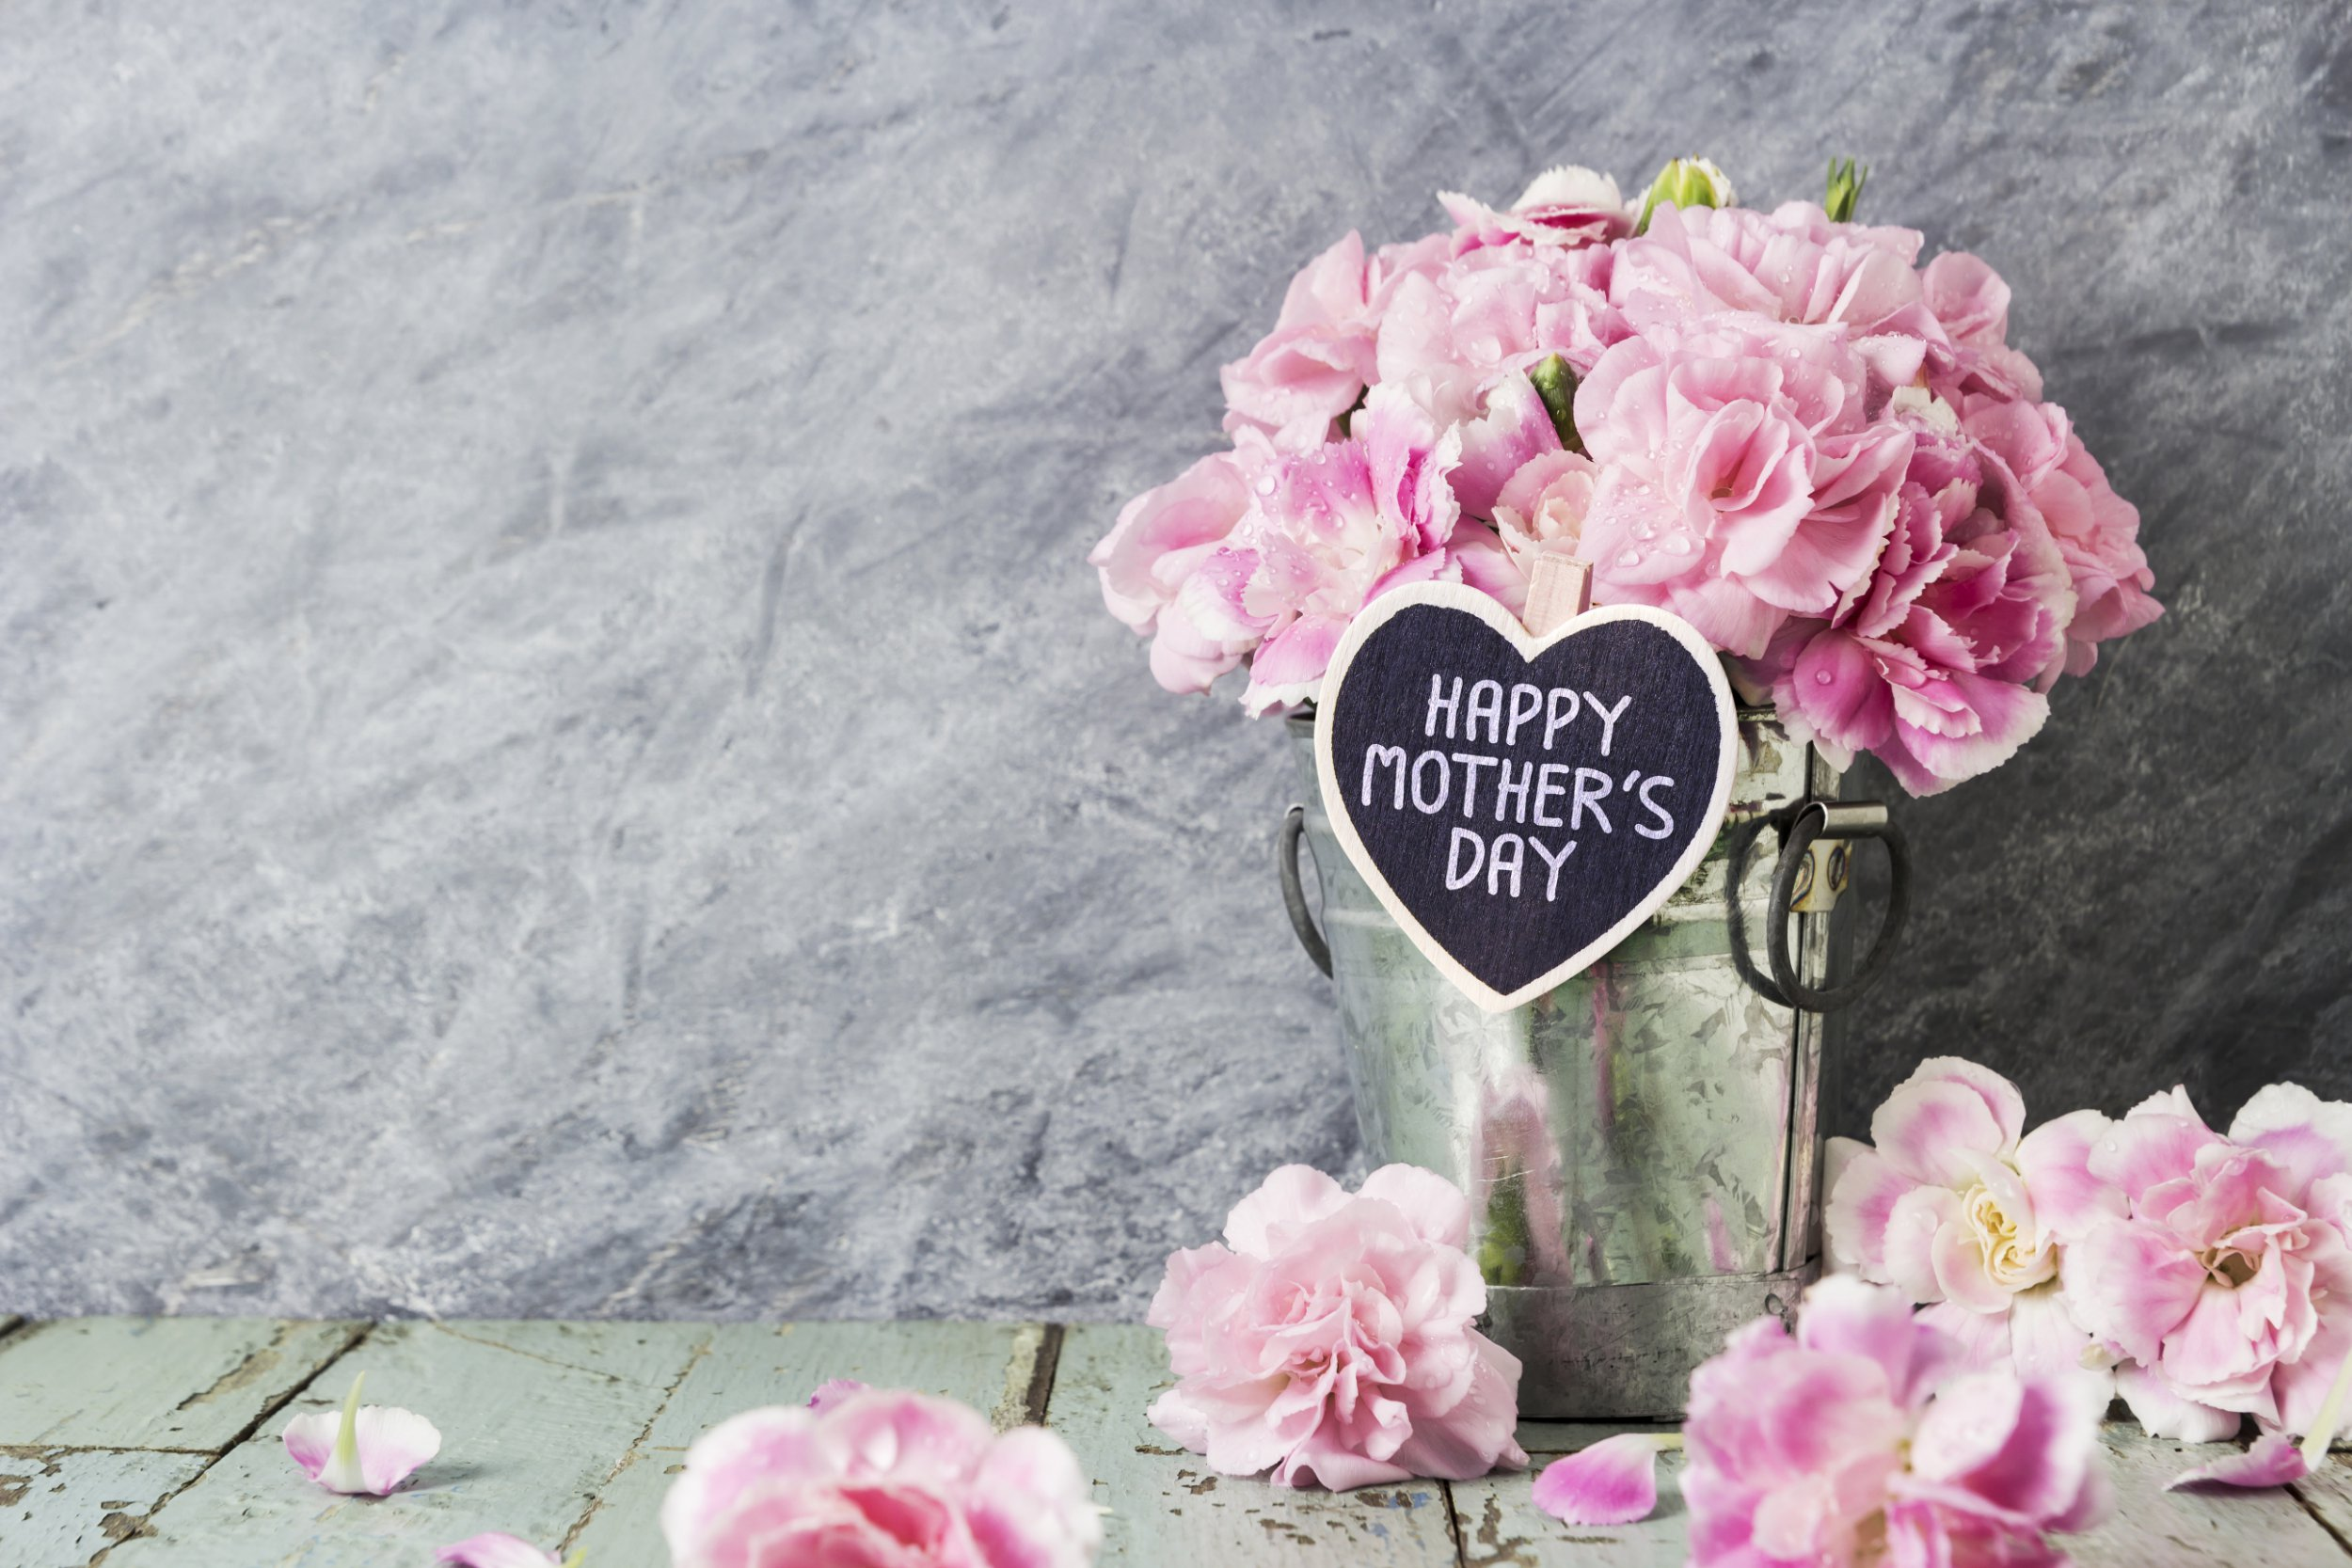 Mother's Day 2019: Gift ideas to get for your mum